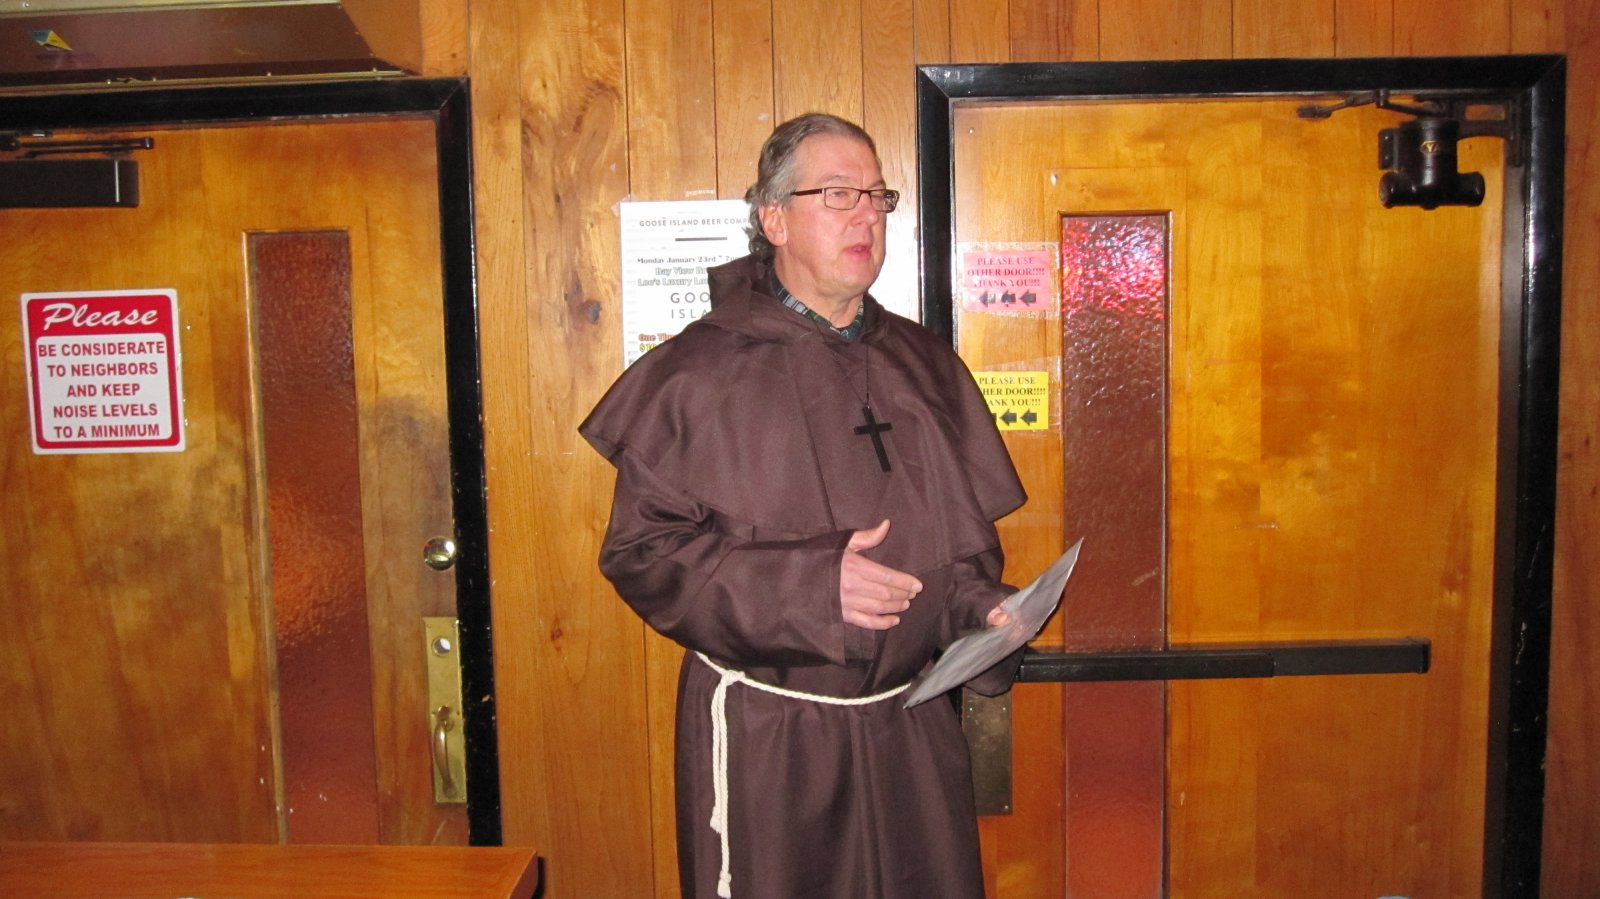 Jim Klisch performing the Blessing of the Bar. Photo by Michael Horne.